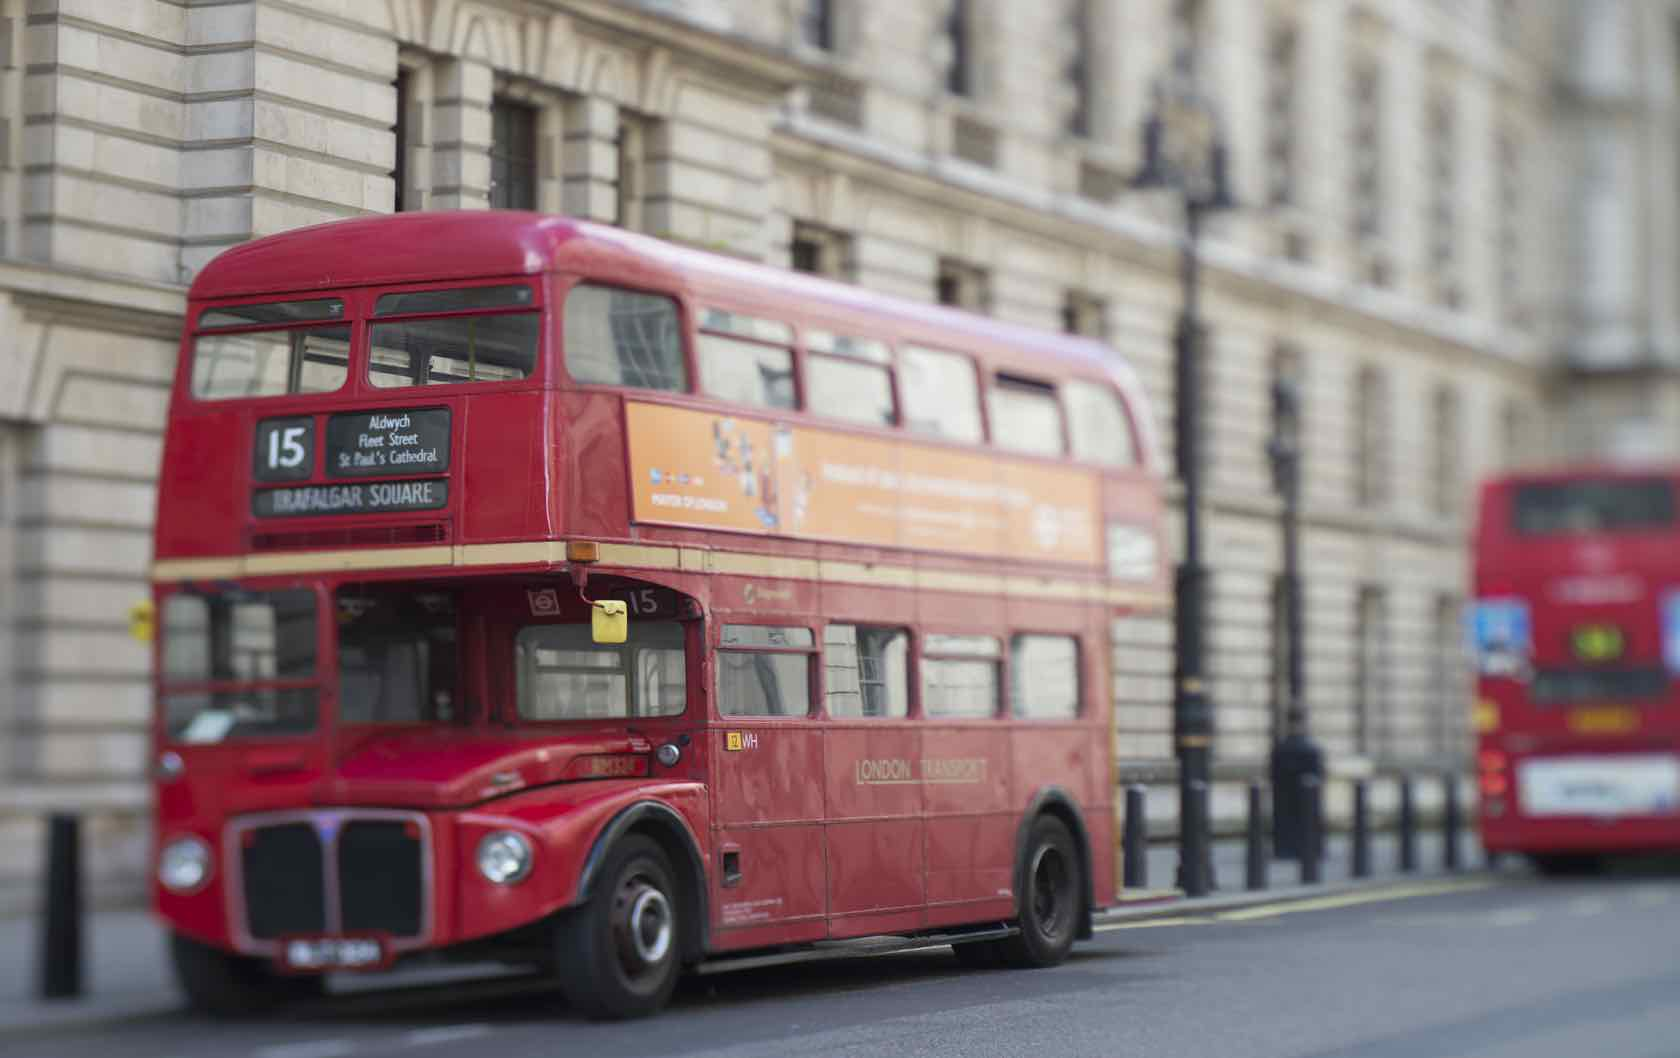 London Buses: The Best Way to Get Around the City